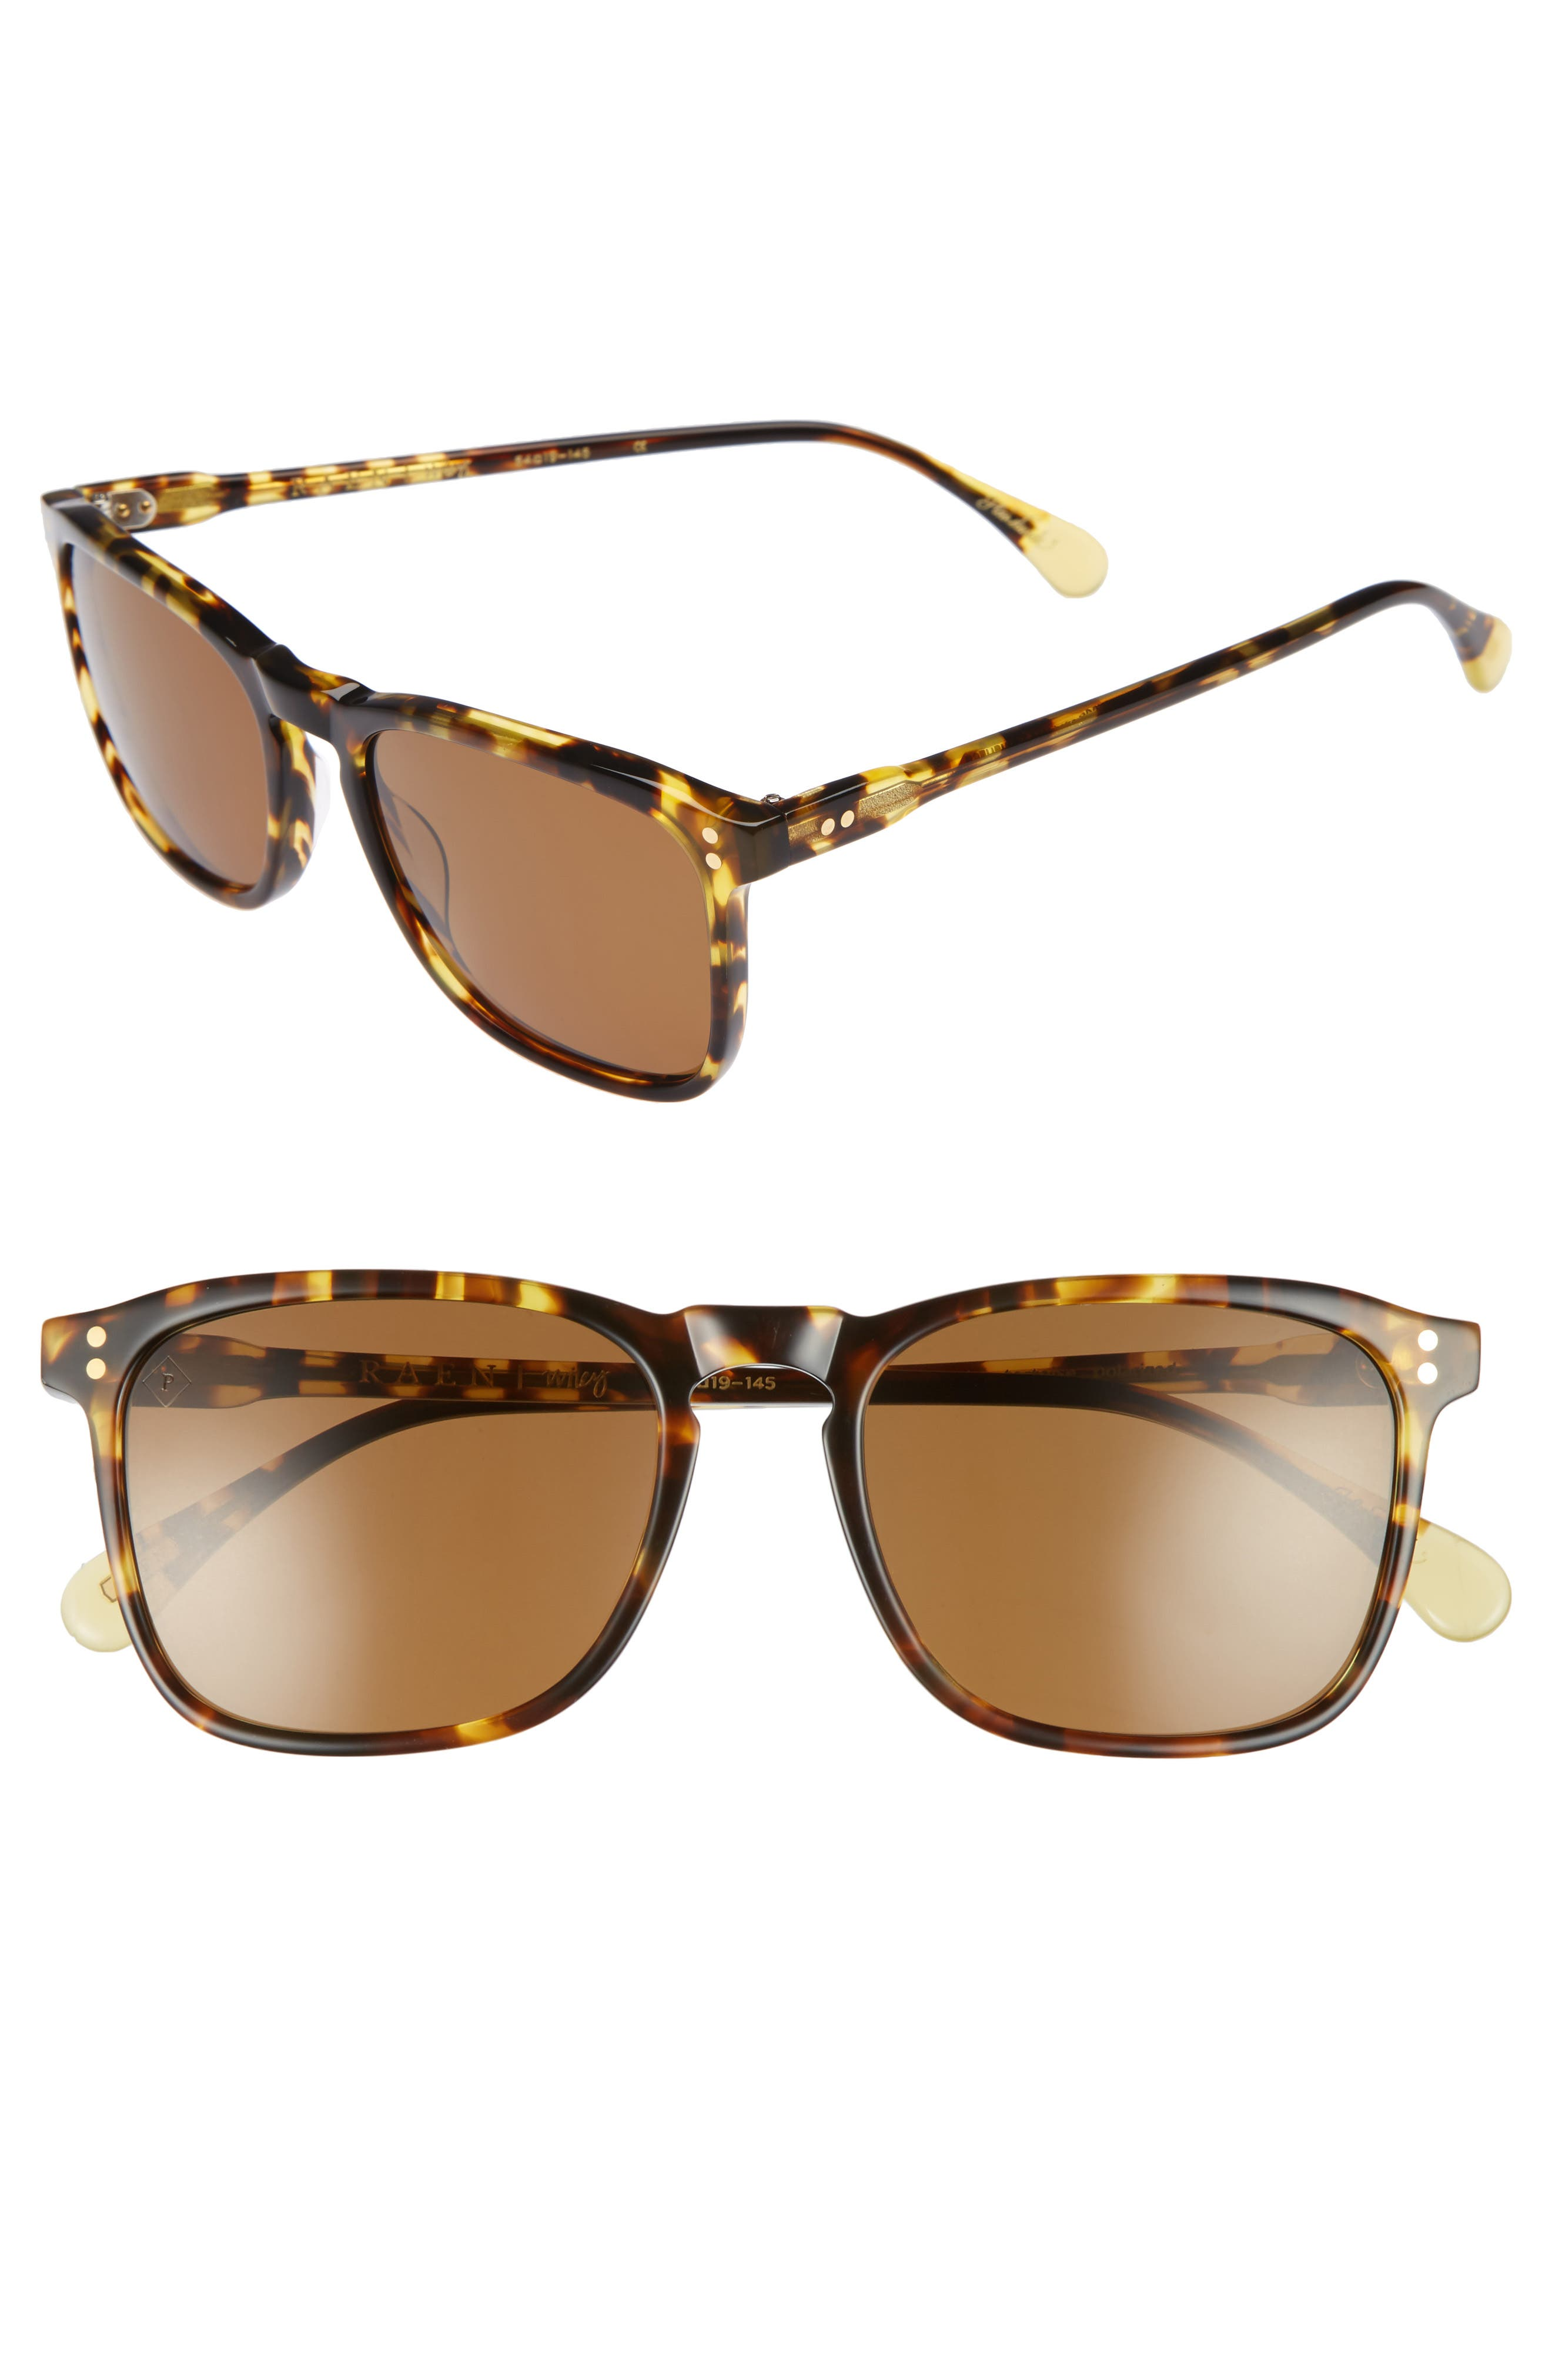 Wiley 54mm Polarized Sunglasses,                         Main,                         color, Tokyo Tortoise/ Brown